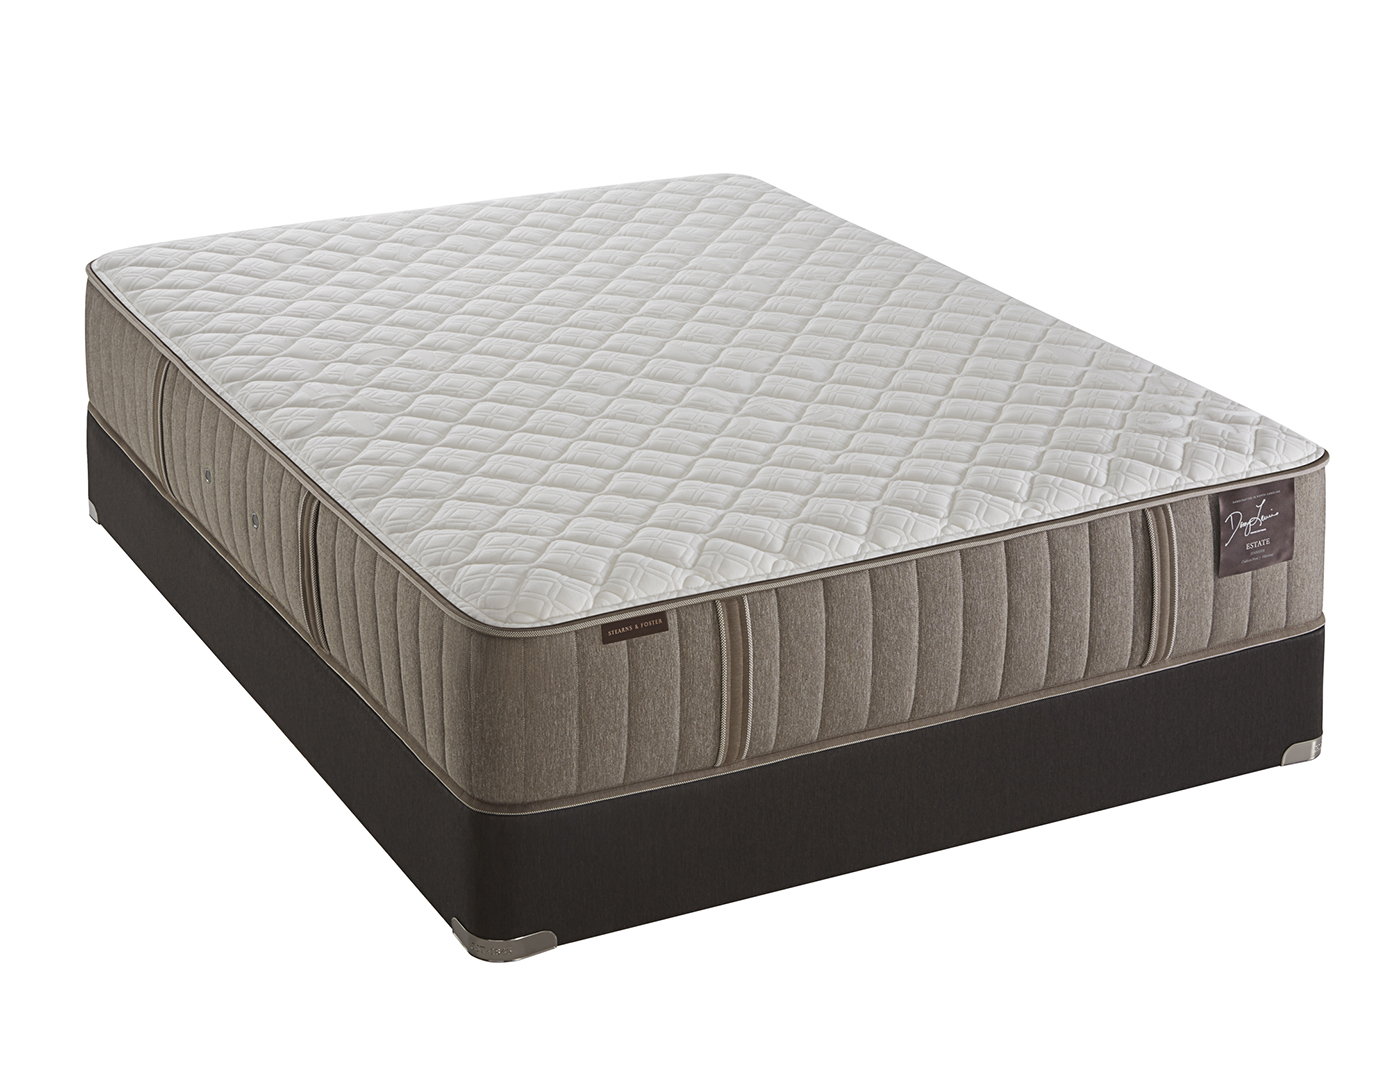 Stearns & Foster Estate Scarborough Ultra Firm Queen Mattress